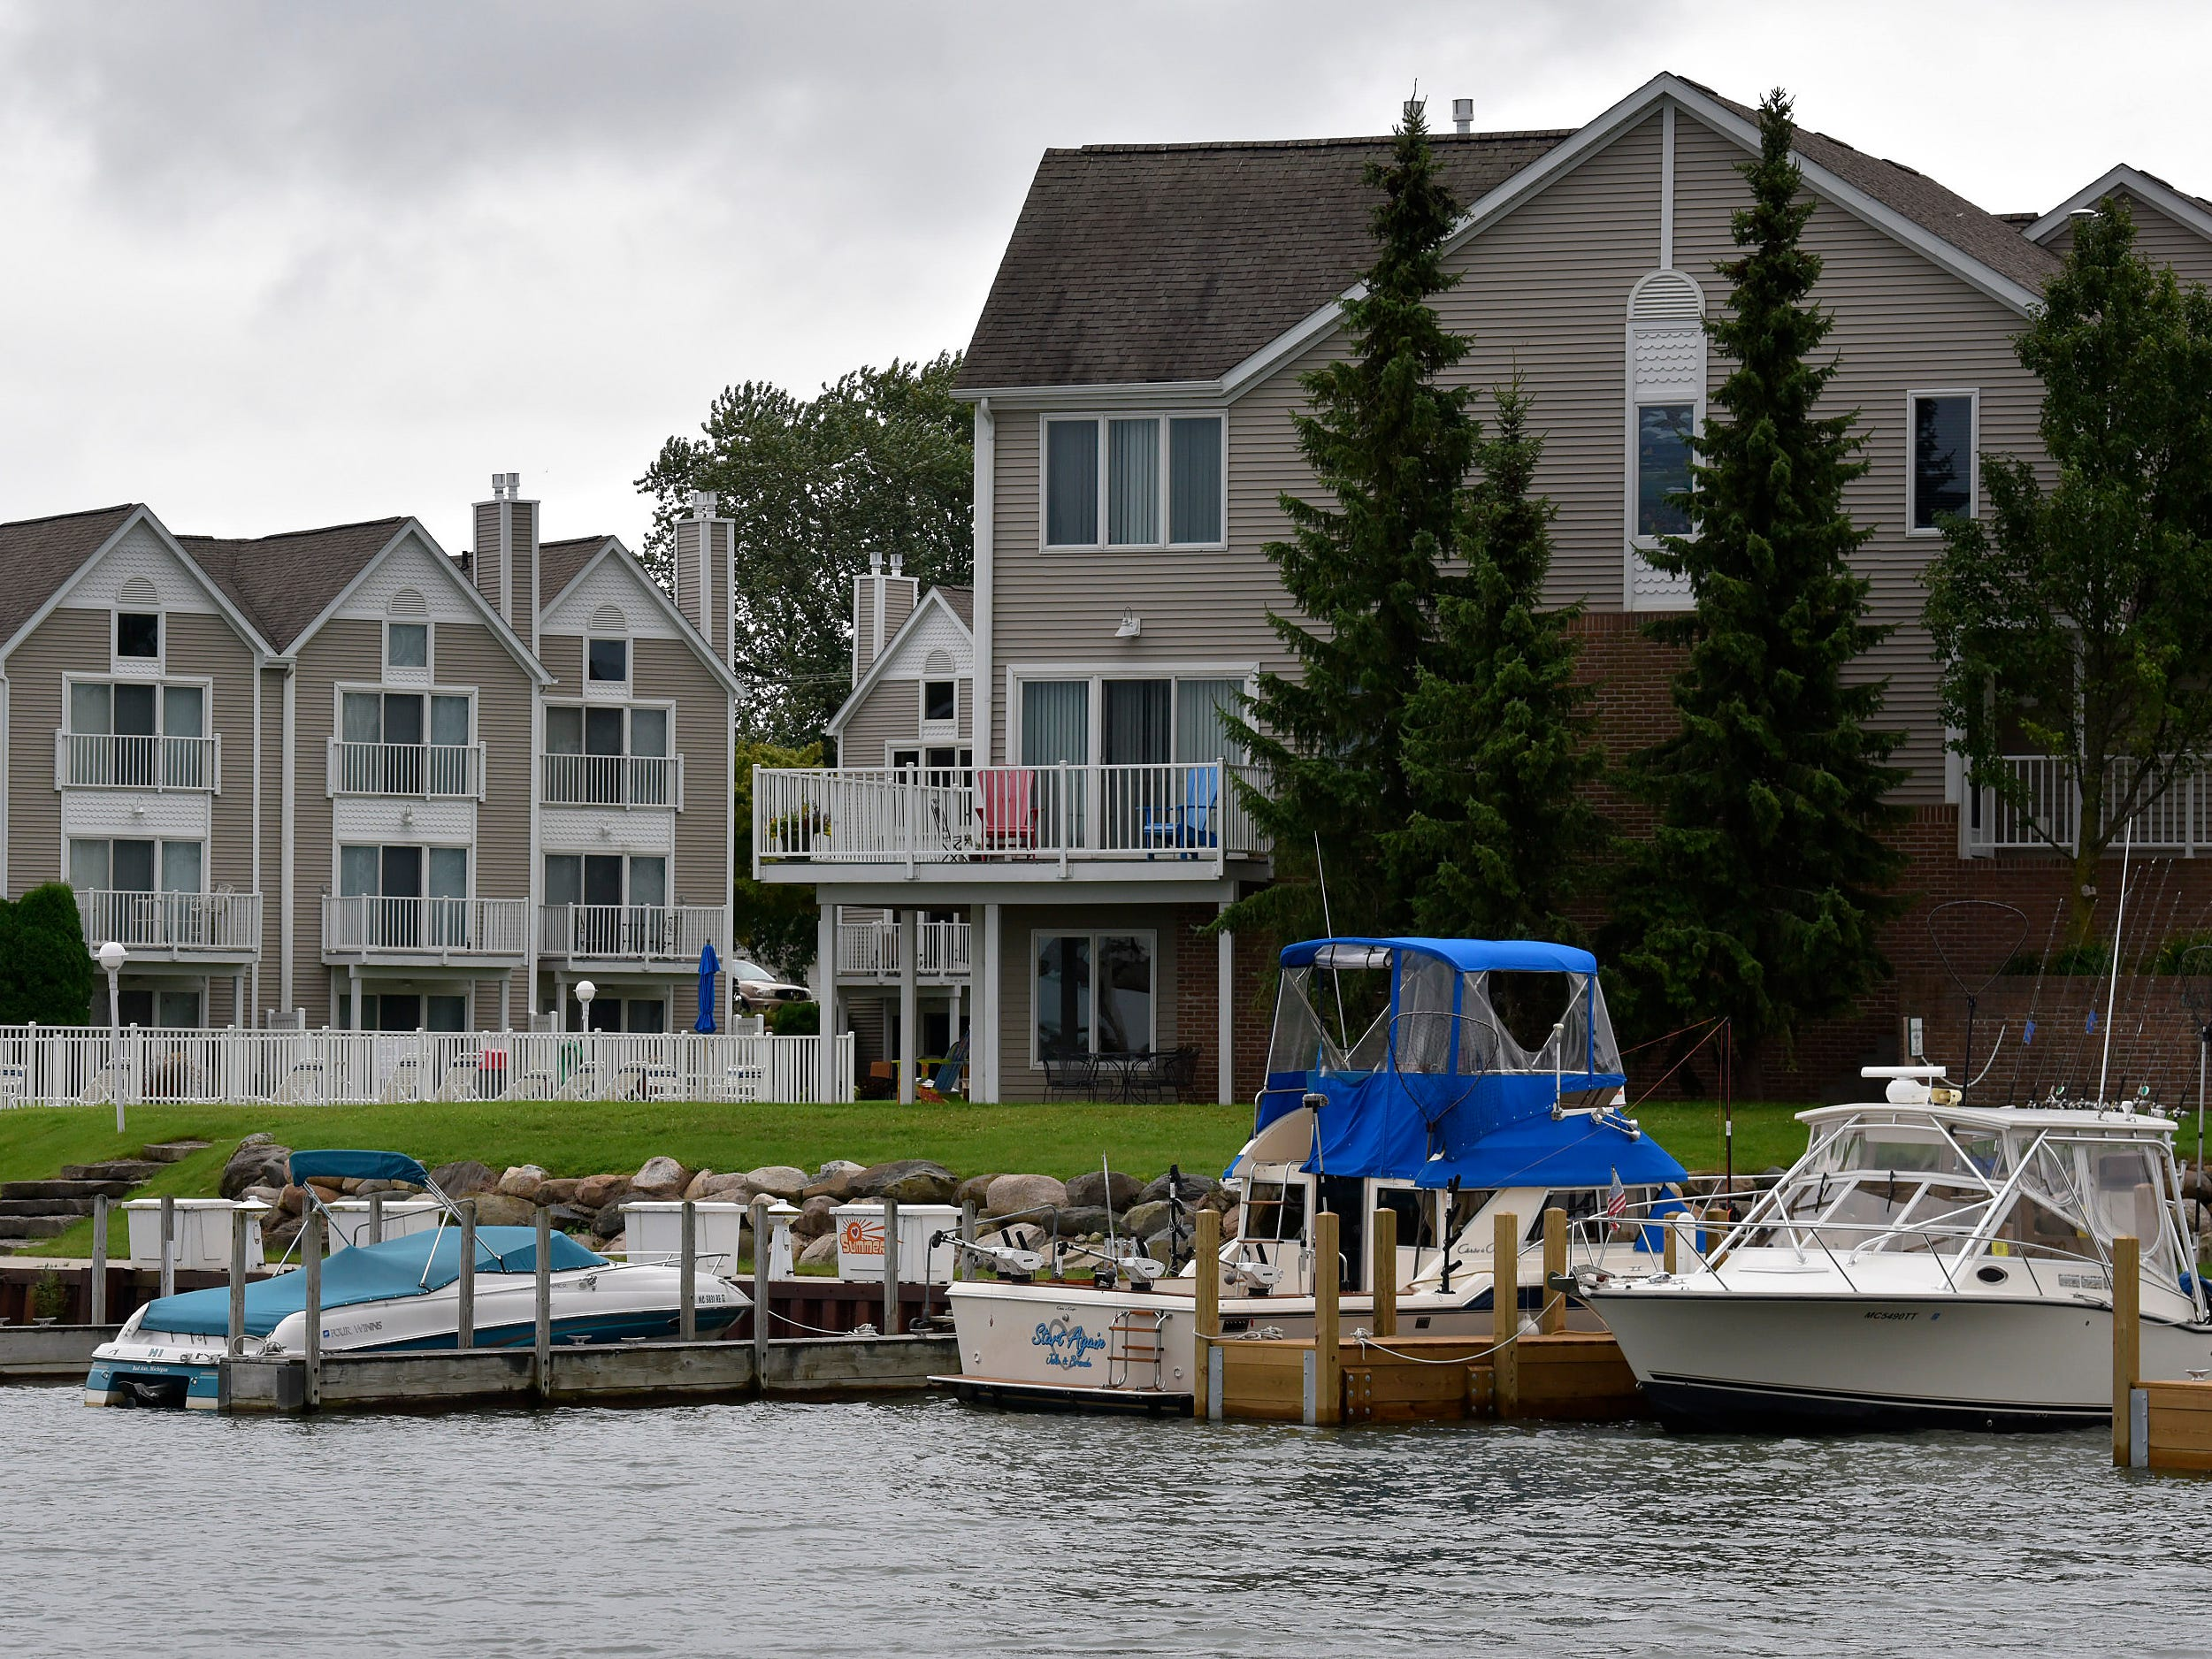 These are the Harbour Pointe Condominiums in Port Austin.